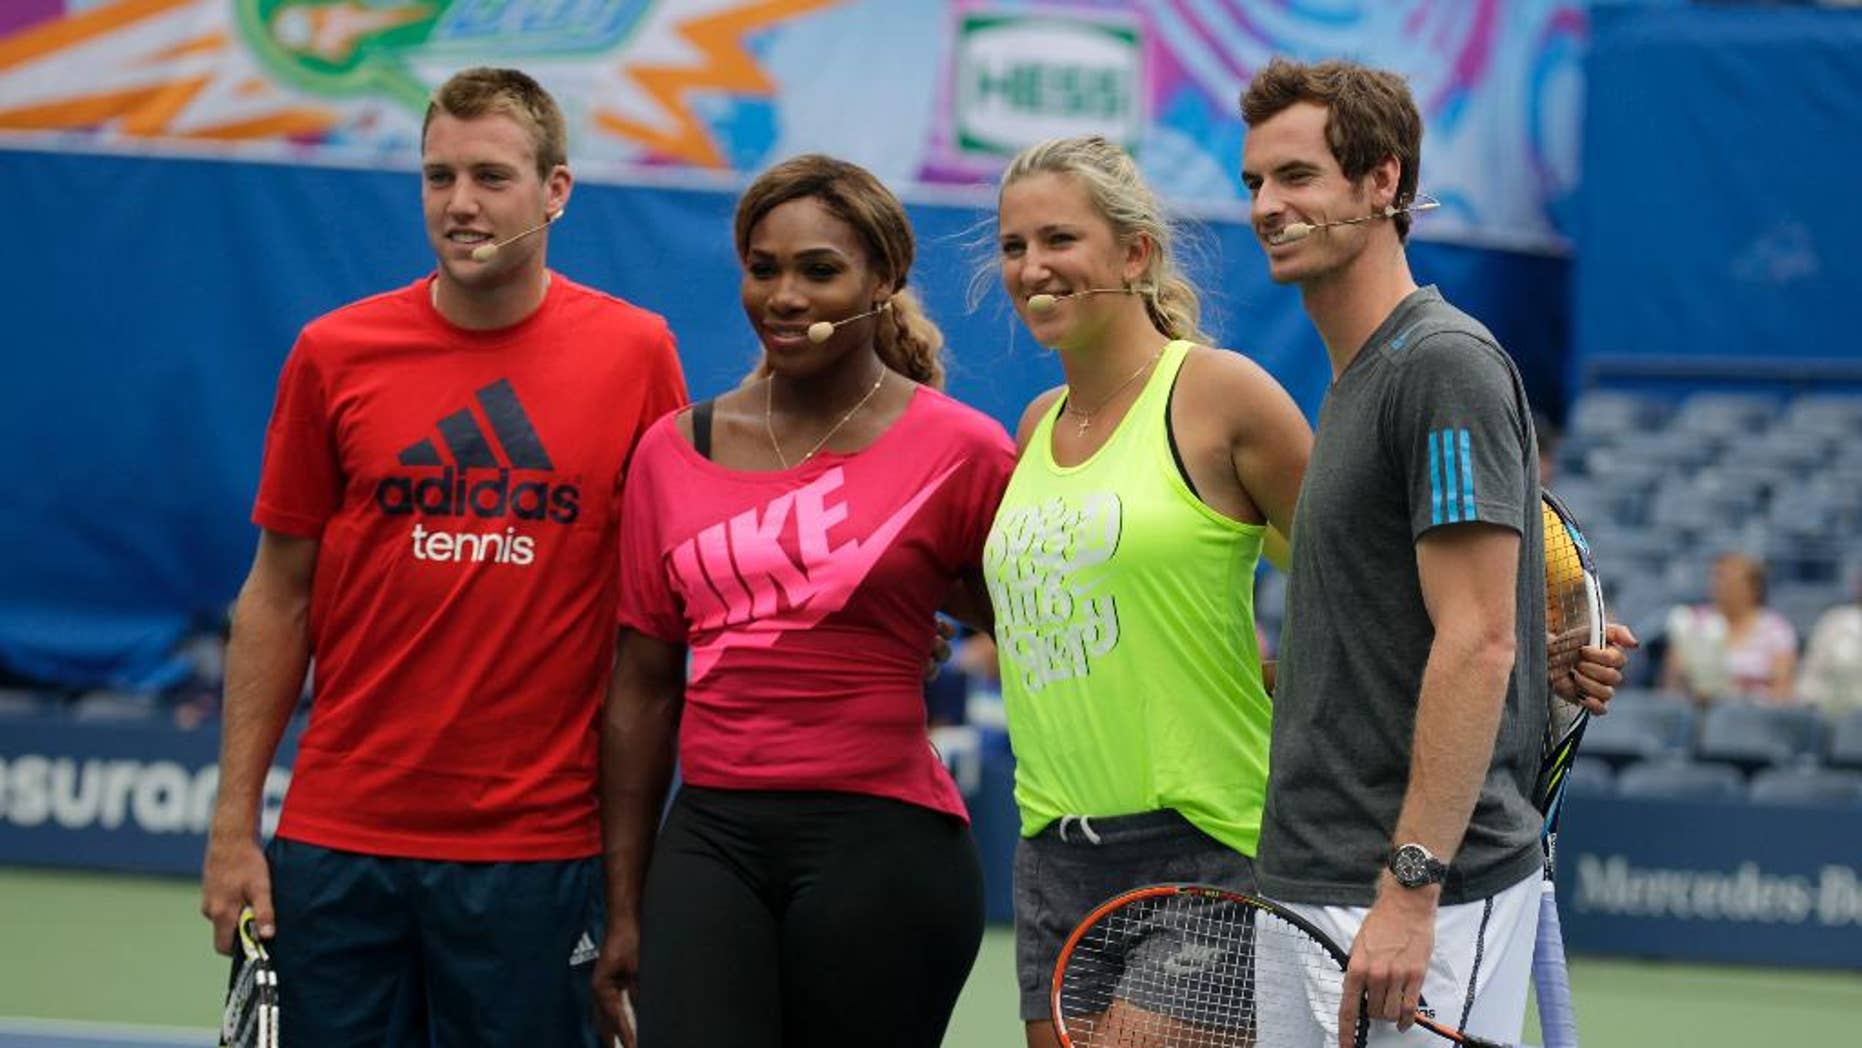 Tennis players, from left, Jack Sock, Serena Williams, Victoria Azarenka and Andy Murray appear at U.S. Open Arthur Ashe Kids Day at the USTA Billie Jean King National Tennis Center on Saturday, Aug. 23, 2014, in New York. (Photo by Andy Kropa/Invision/AP)